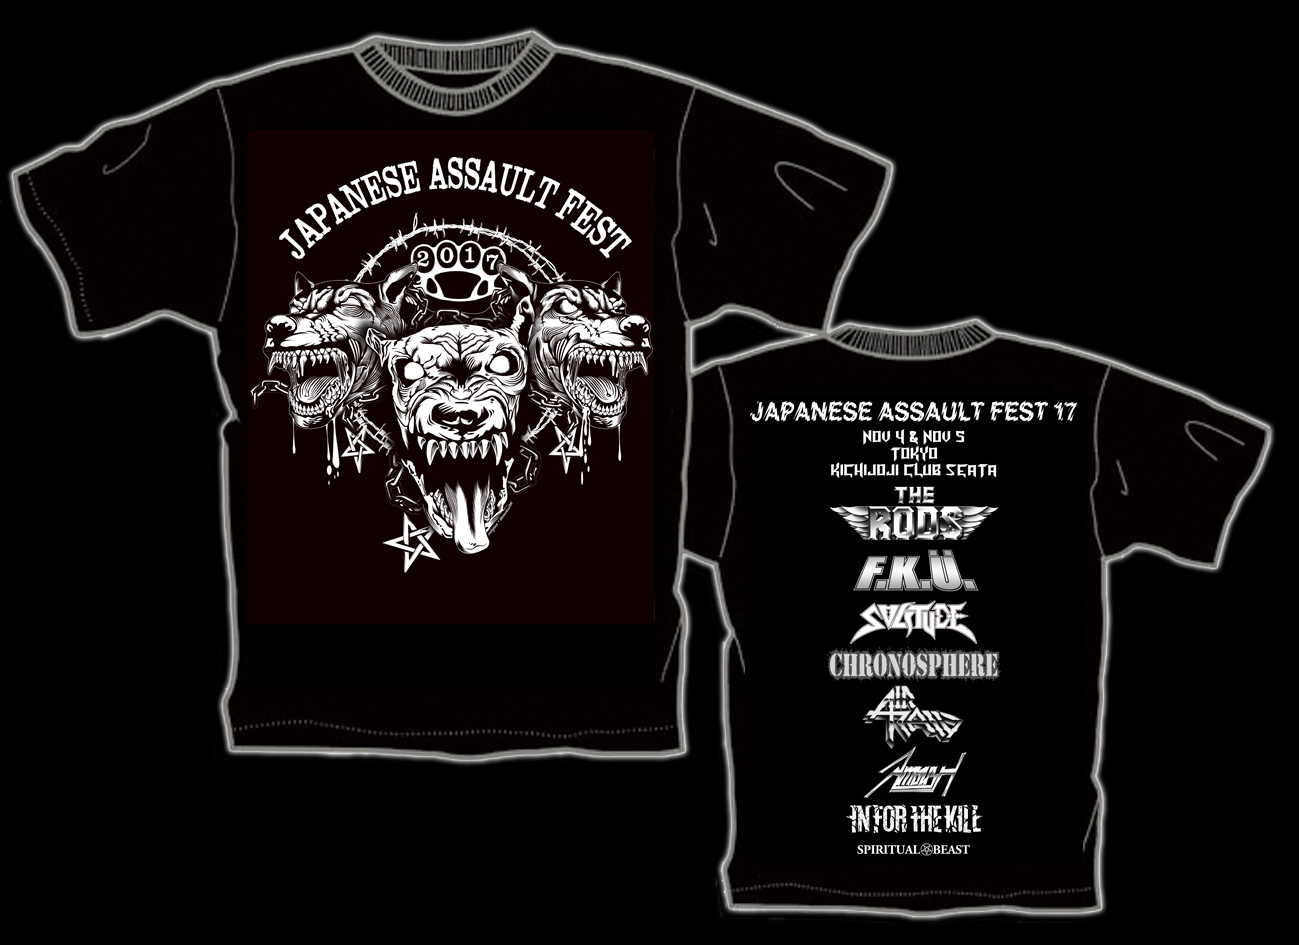 JAPANESE ASSAULT FEST 17 限定Tシャツ